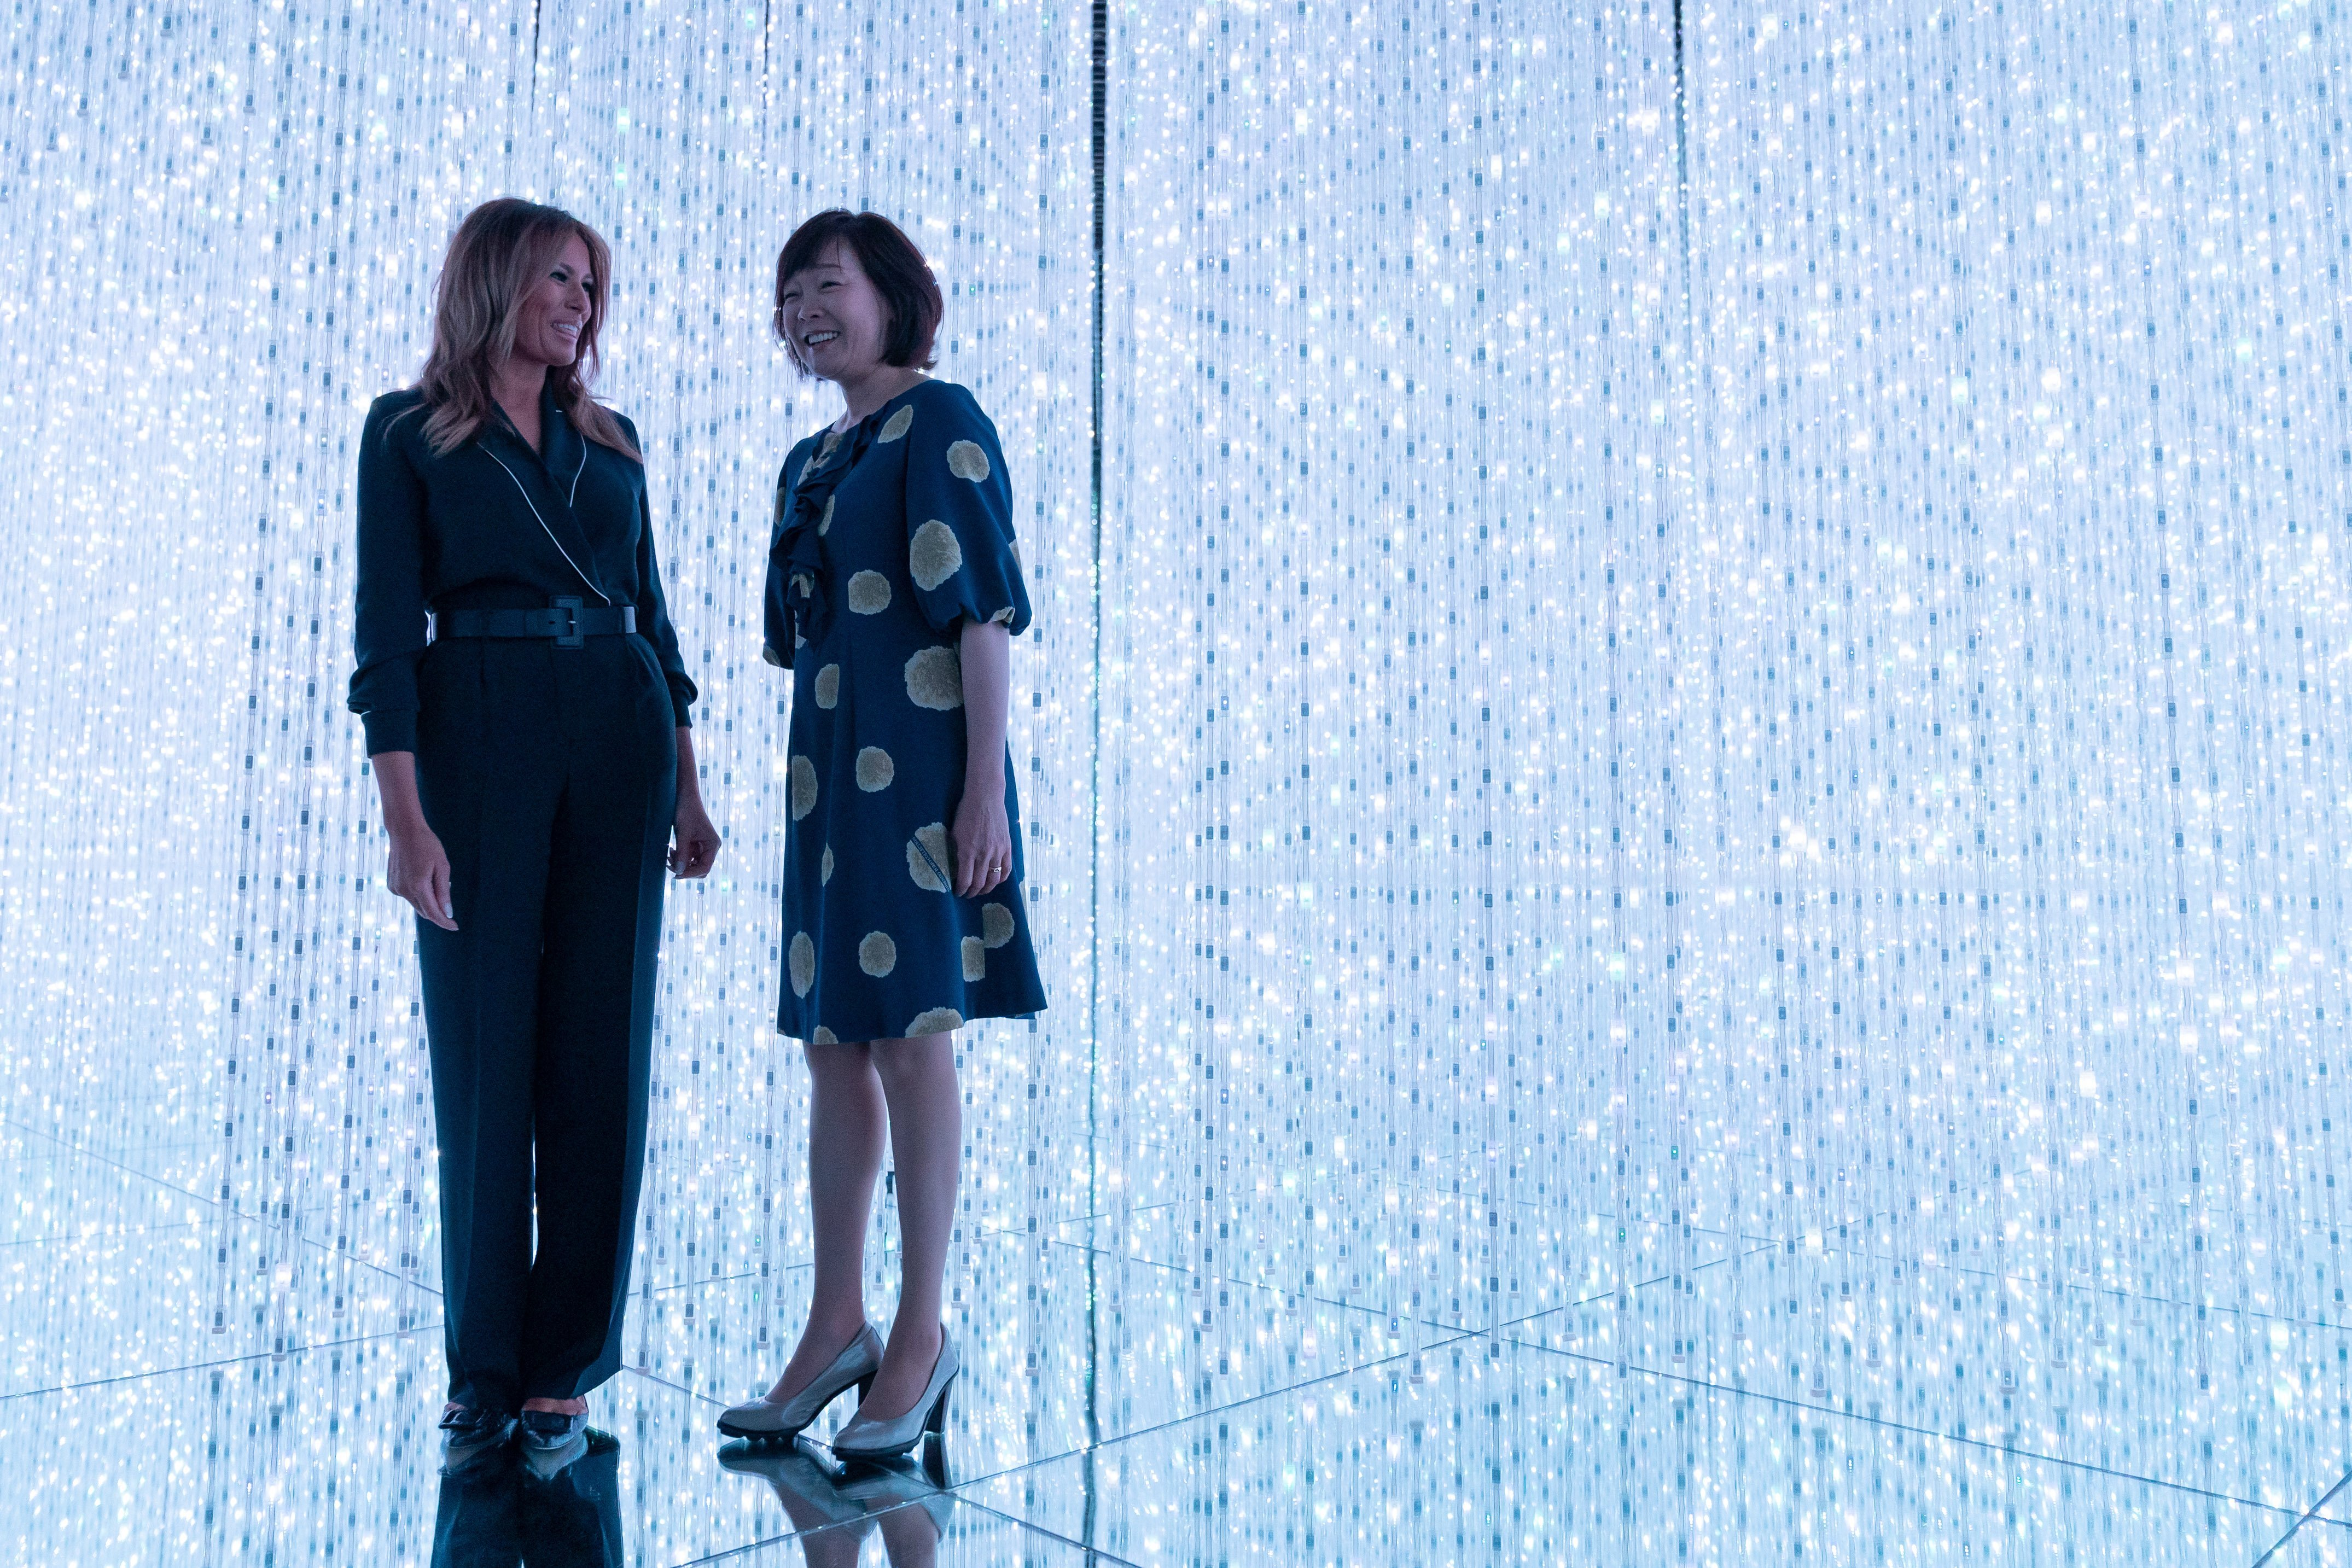 Melania Trump and Akie Abe at the Mori Building Digital Art Museum in Tokyo, Japan   Photo: Getty Images